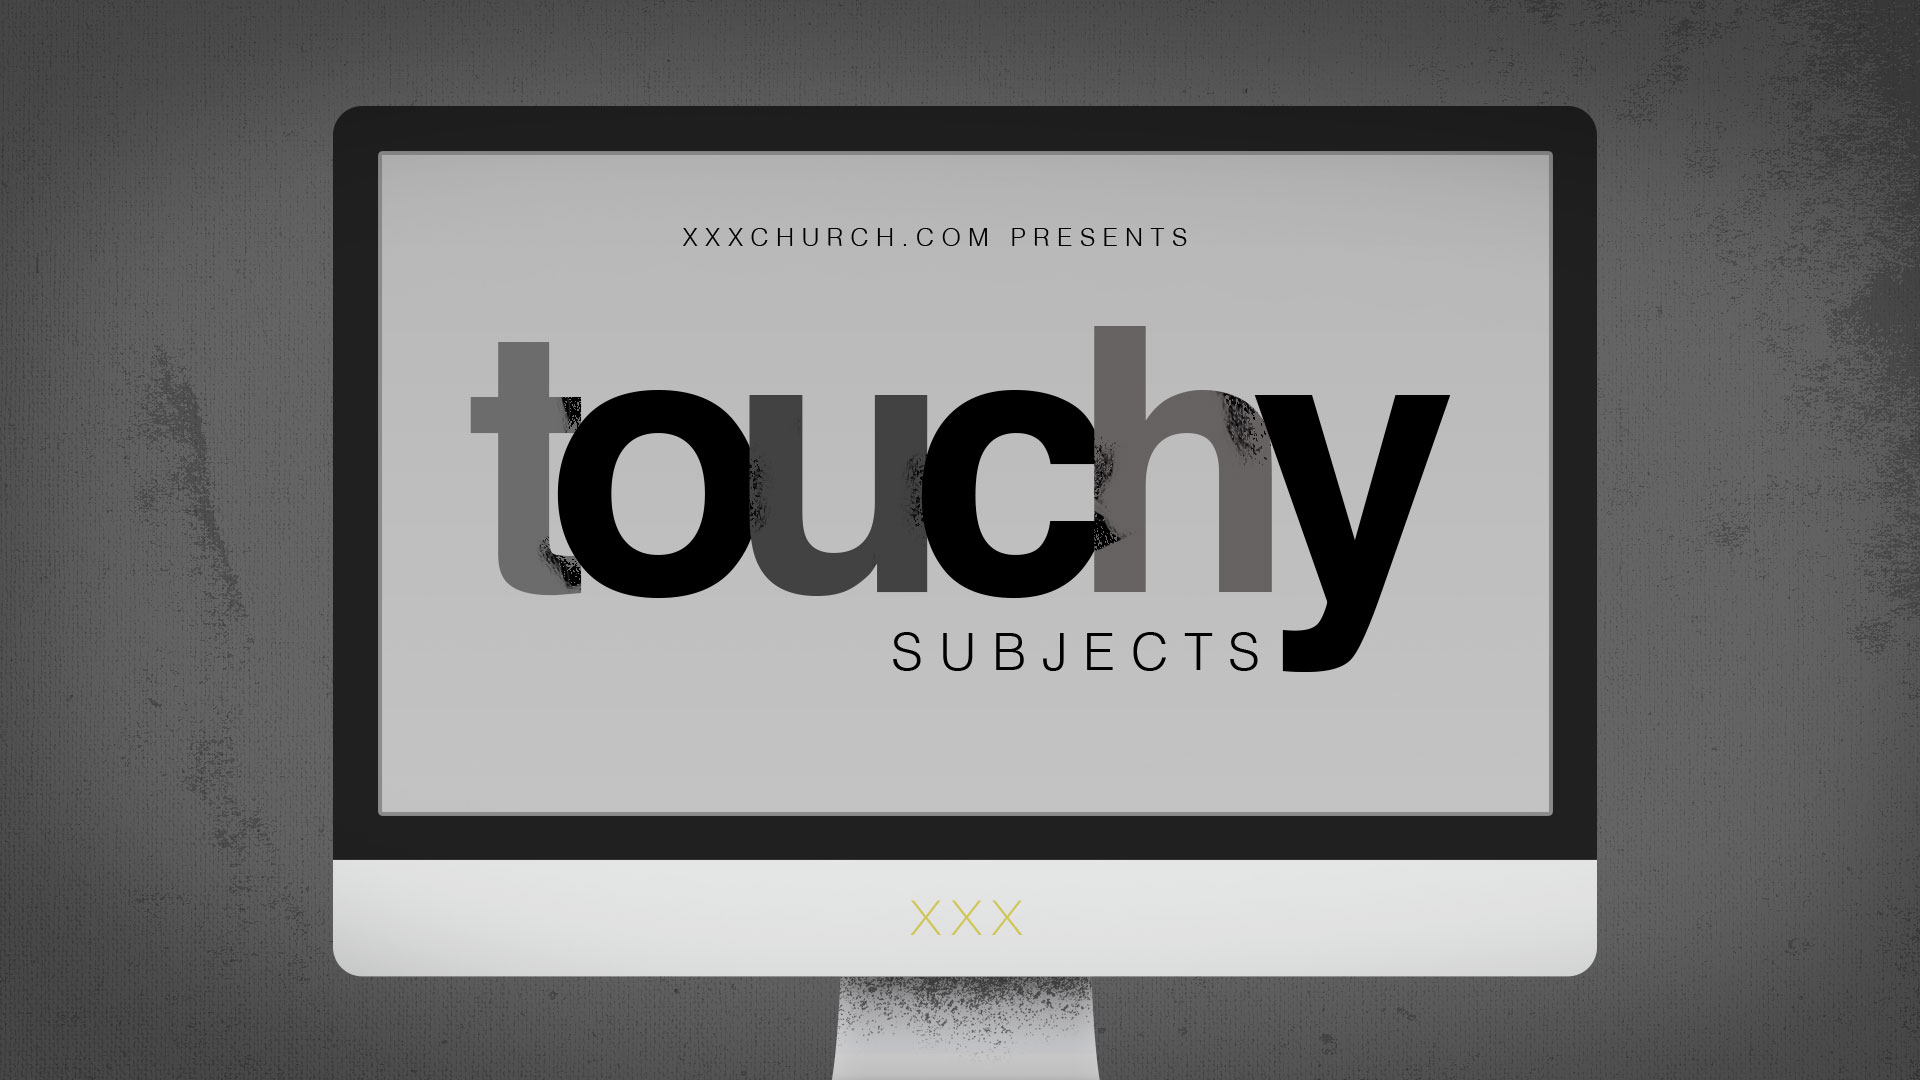 Touchy_Subjects